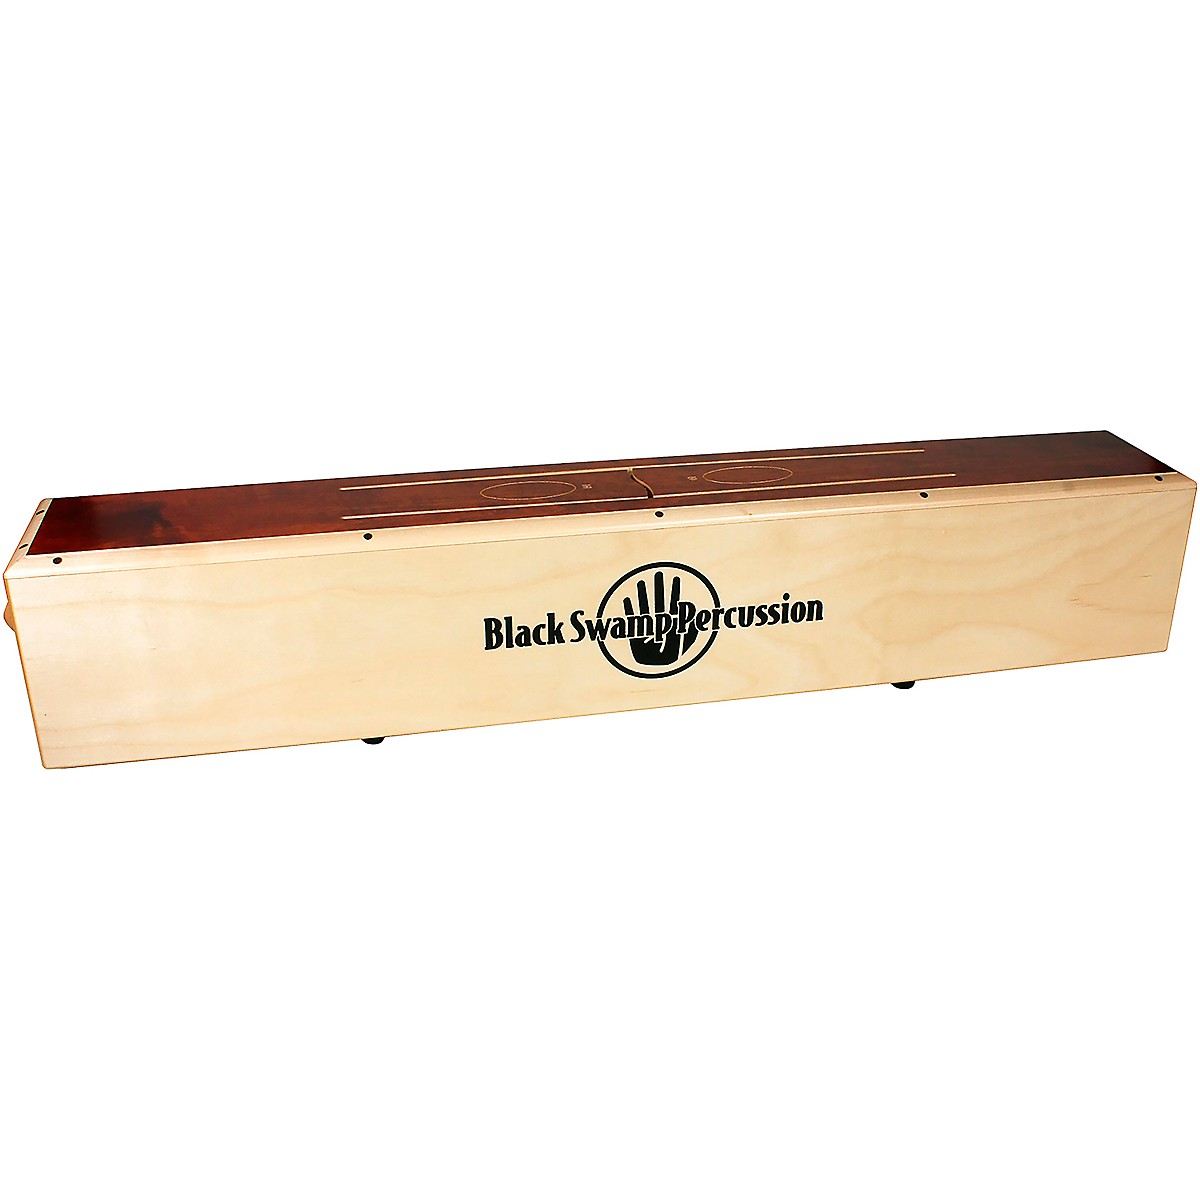 Black Swamp Percussion Log Drum